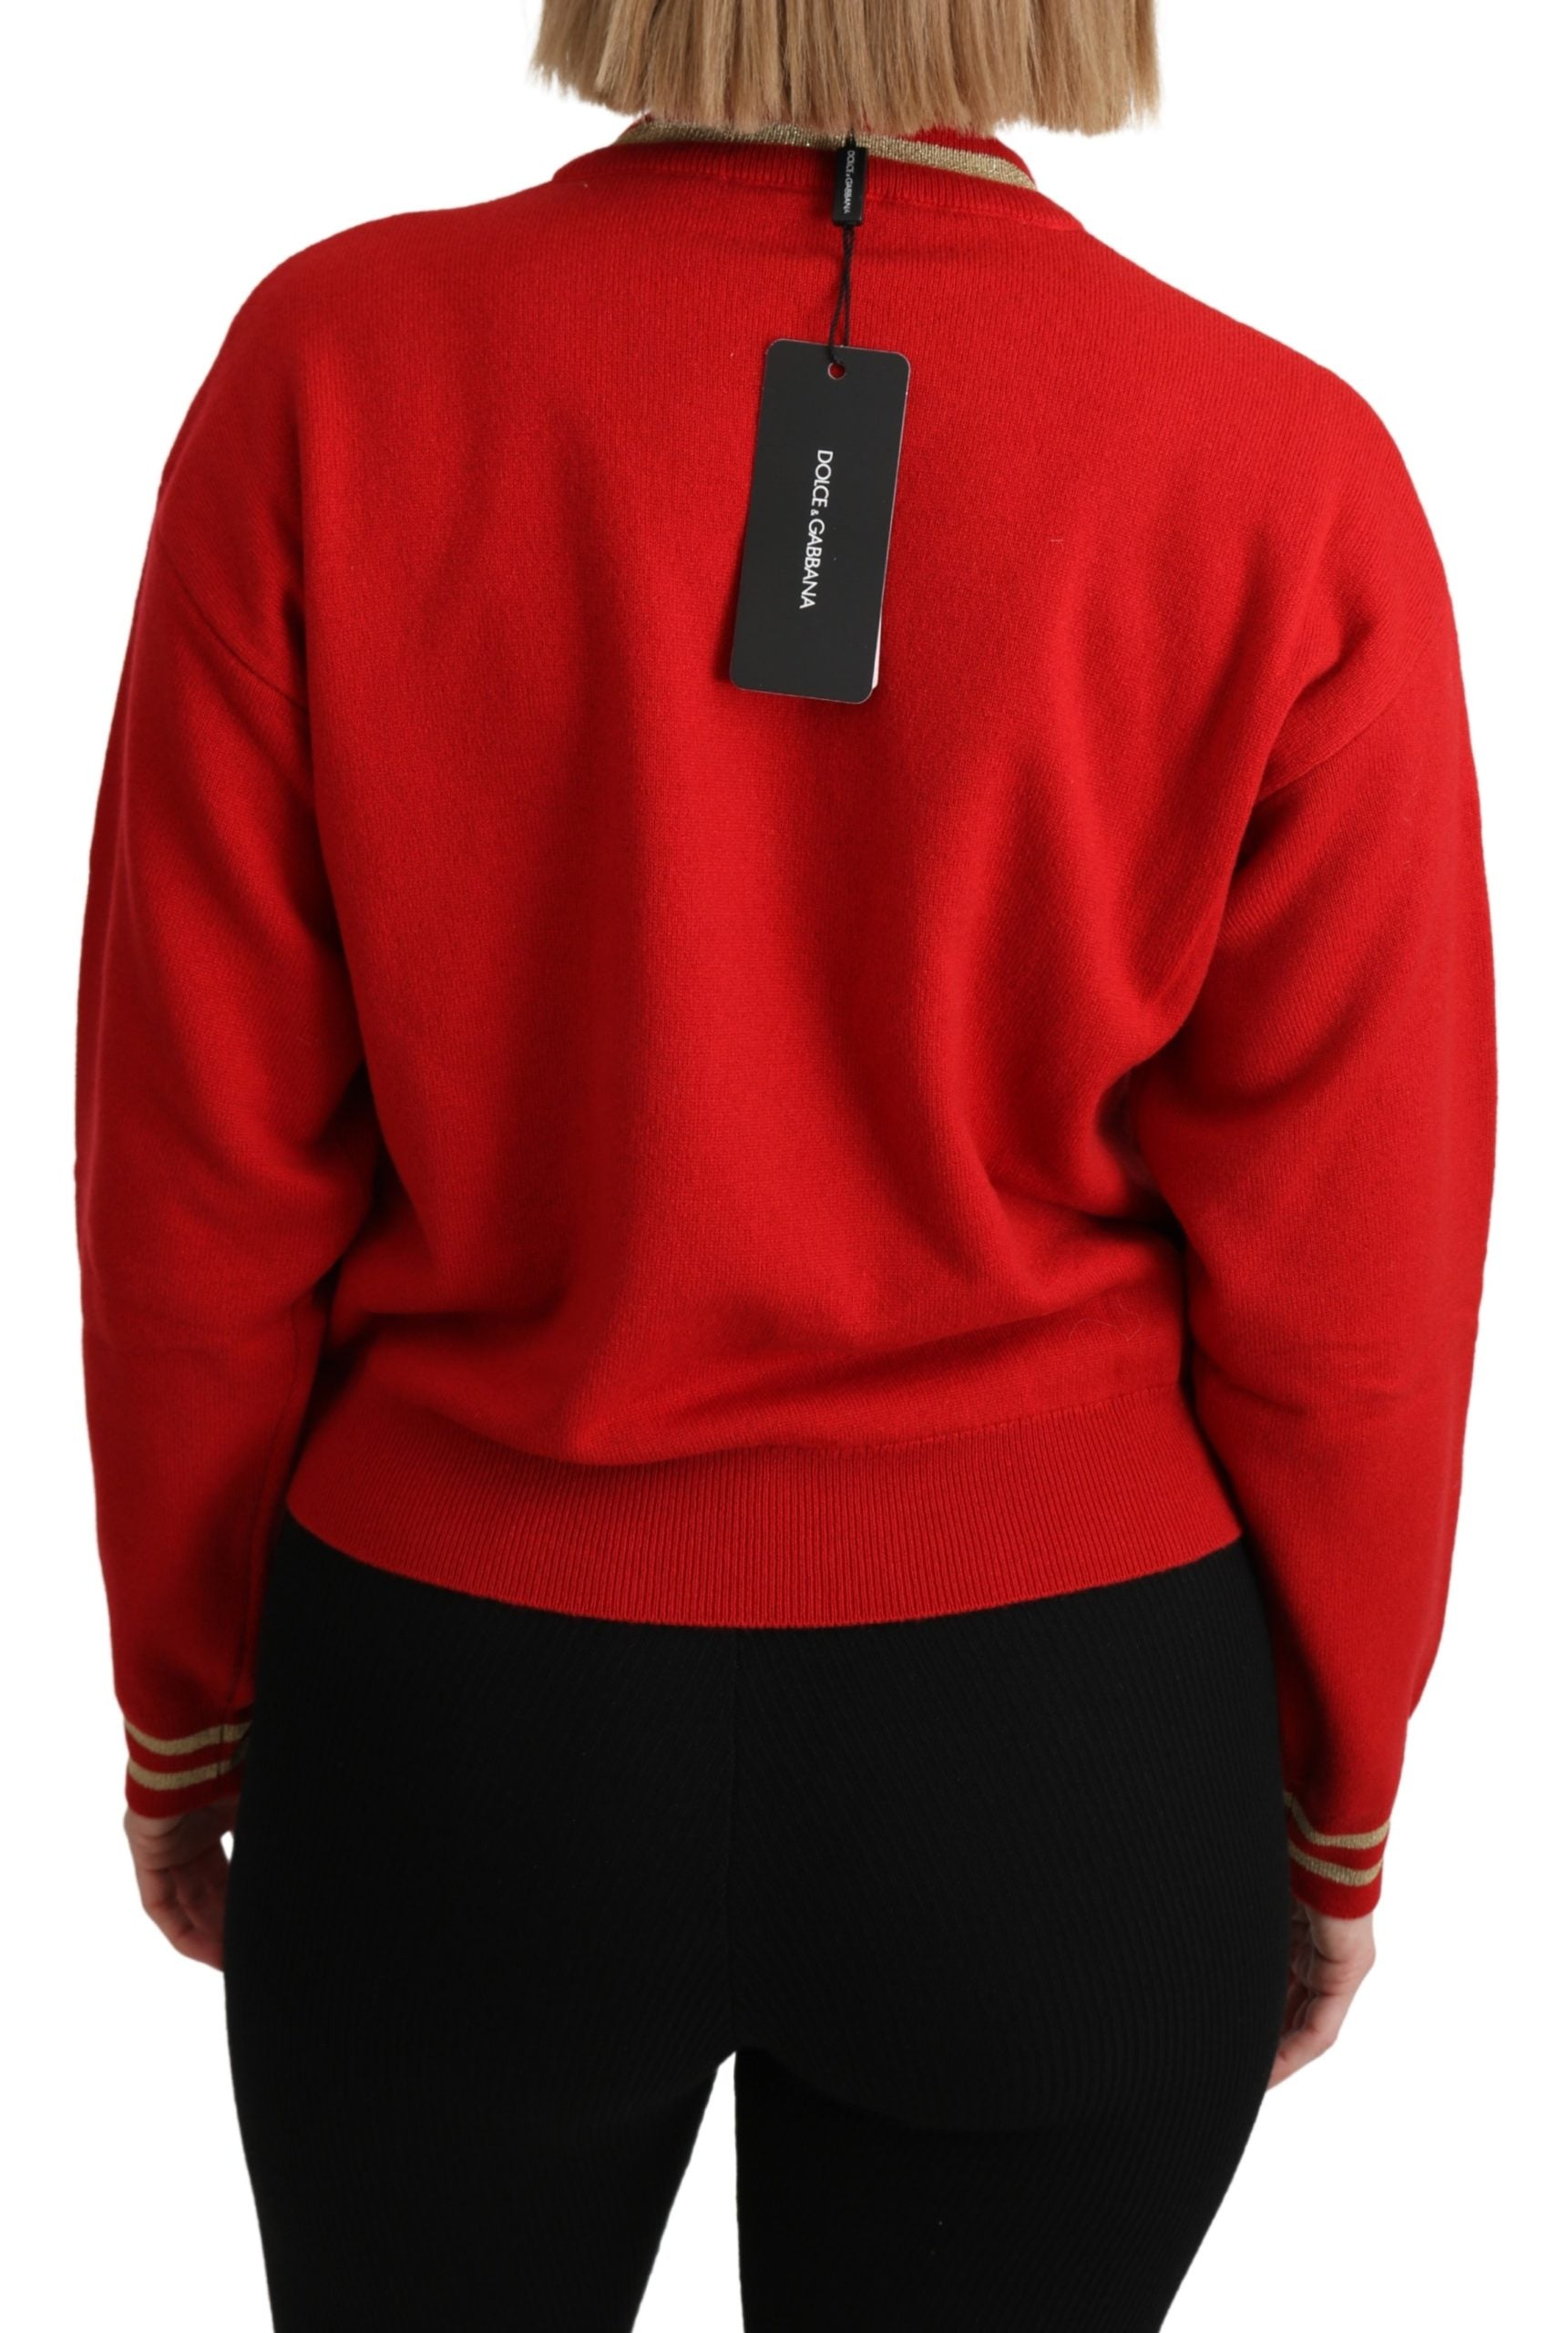 Image of Dolce & Gabbana Turtleneck Cashmere Pullover Sweater